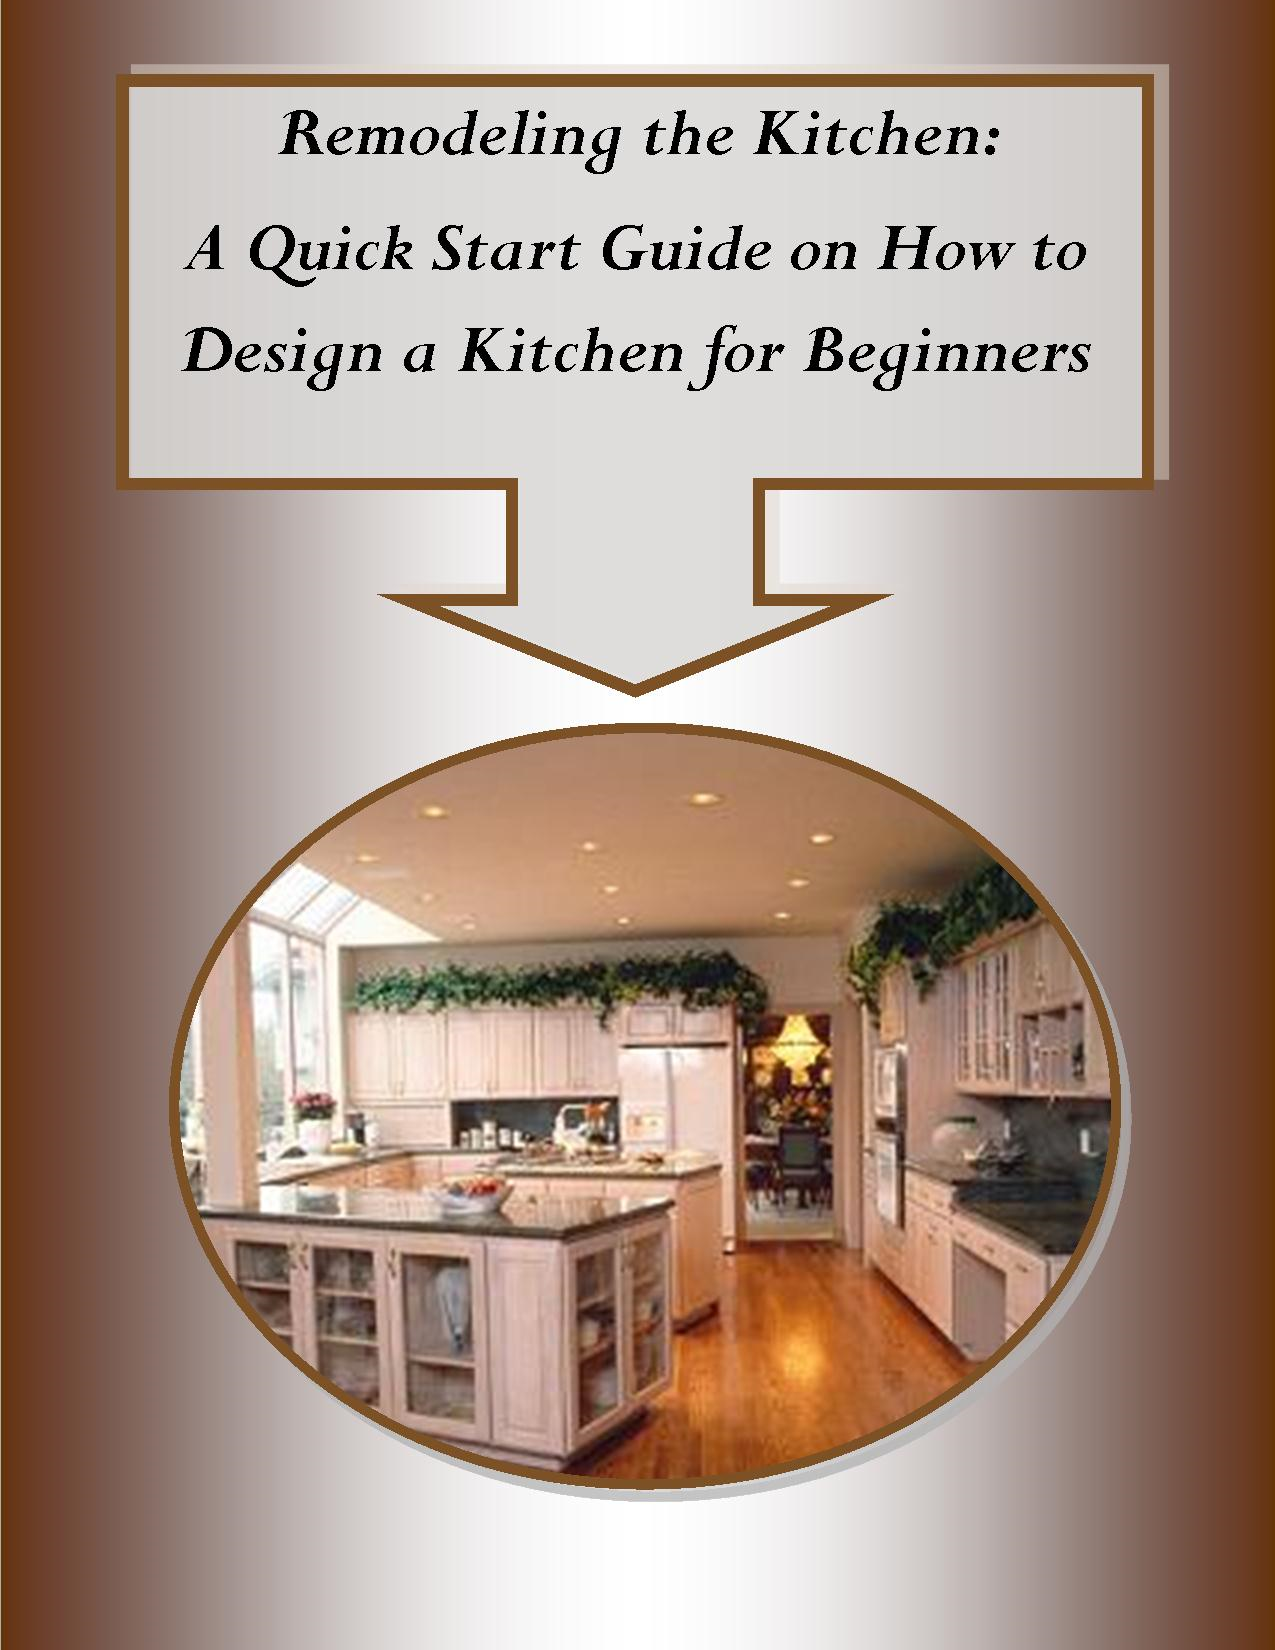 Remodeling the Kitchen– A Quick Start Guide on How to Design a Kitchen for Beginners